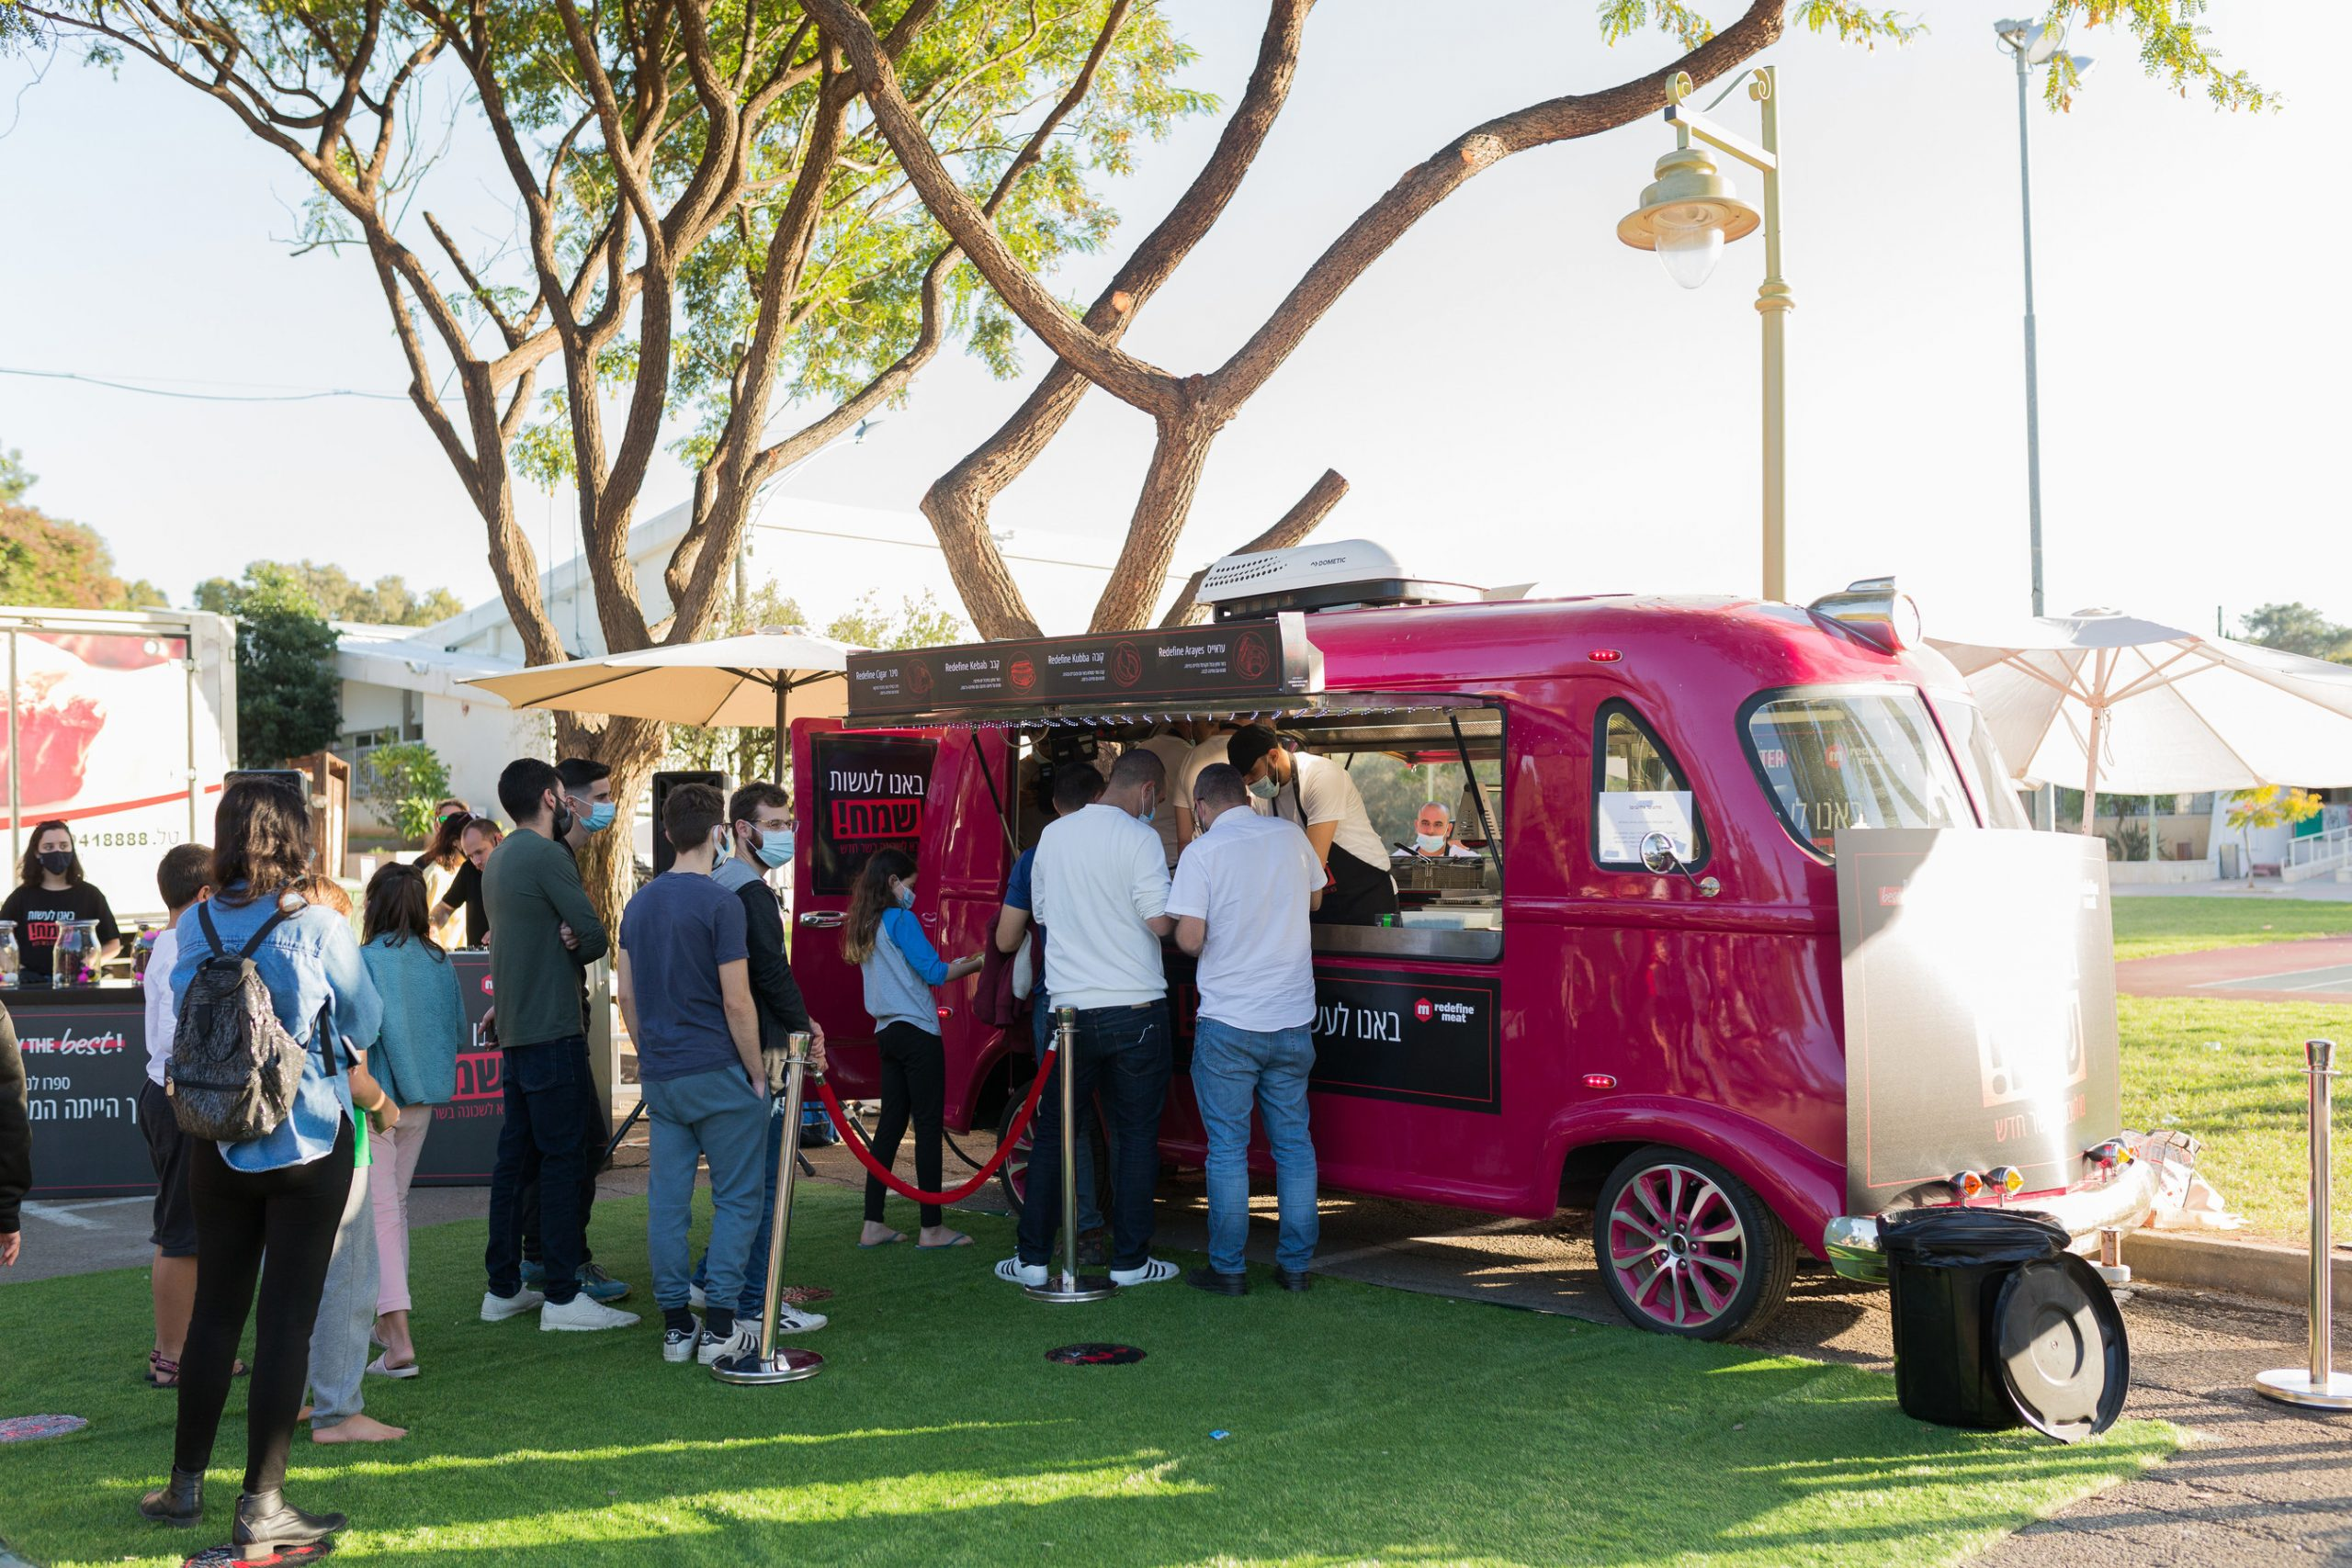 Redefine Meat and Best Meister's food truck served over 600 customers with Alt-Meat in less than five hours